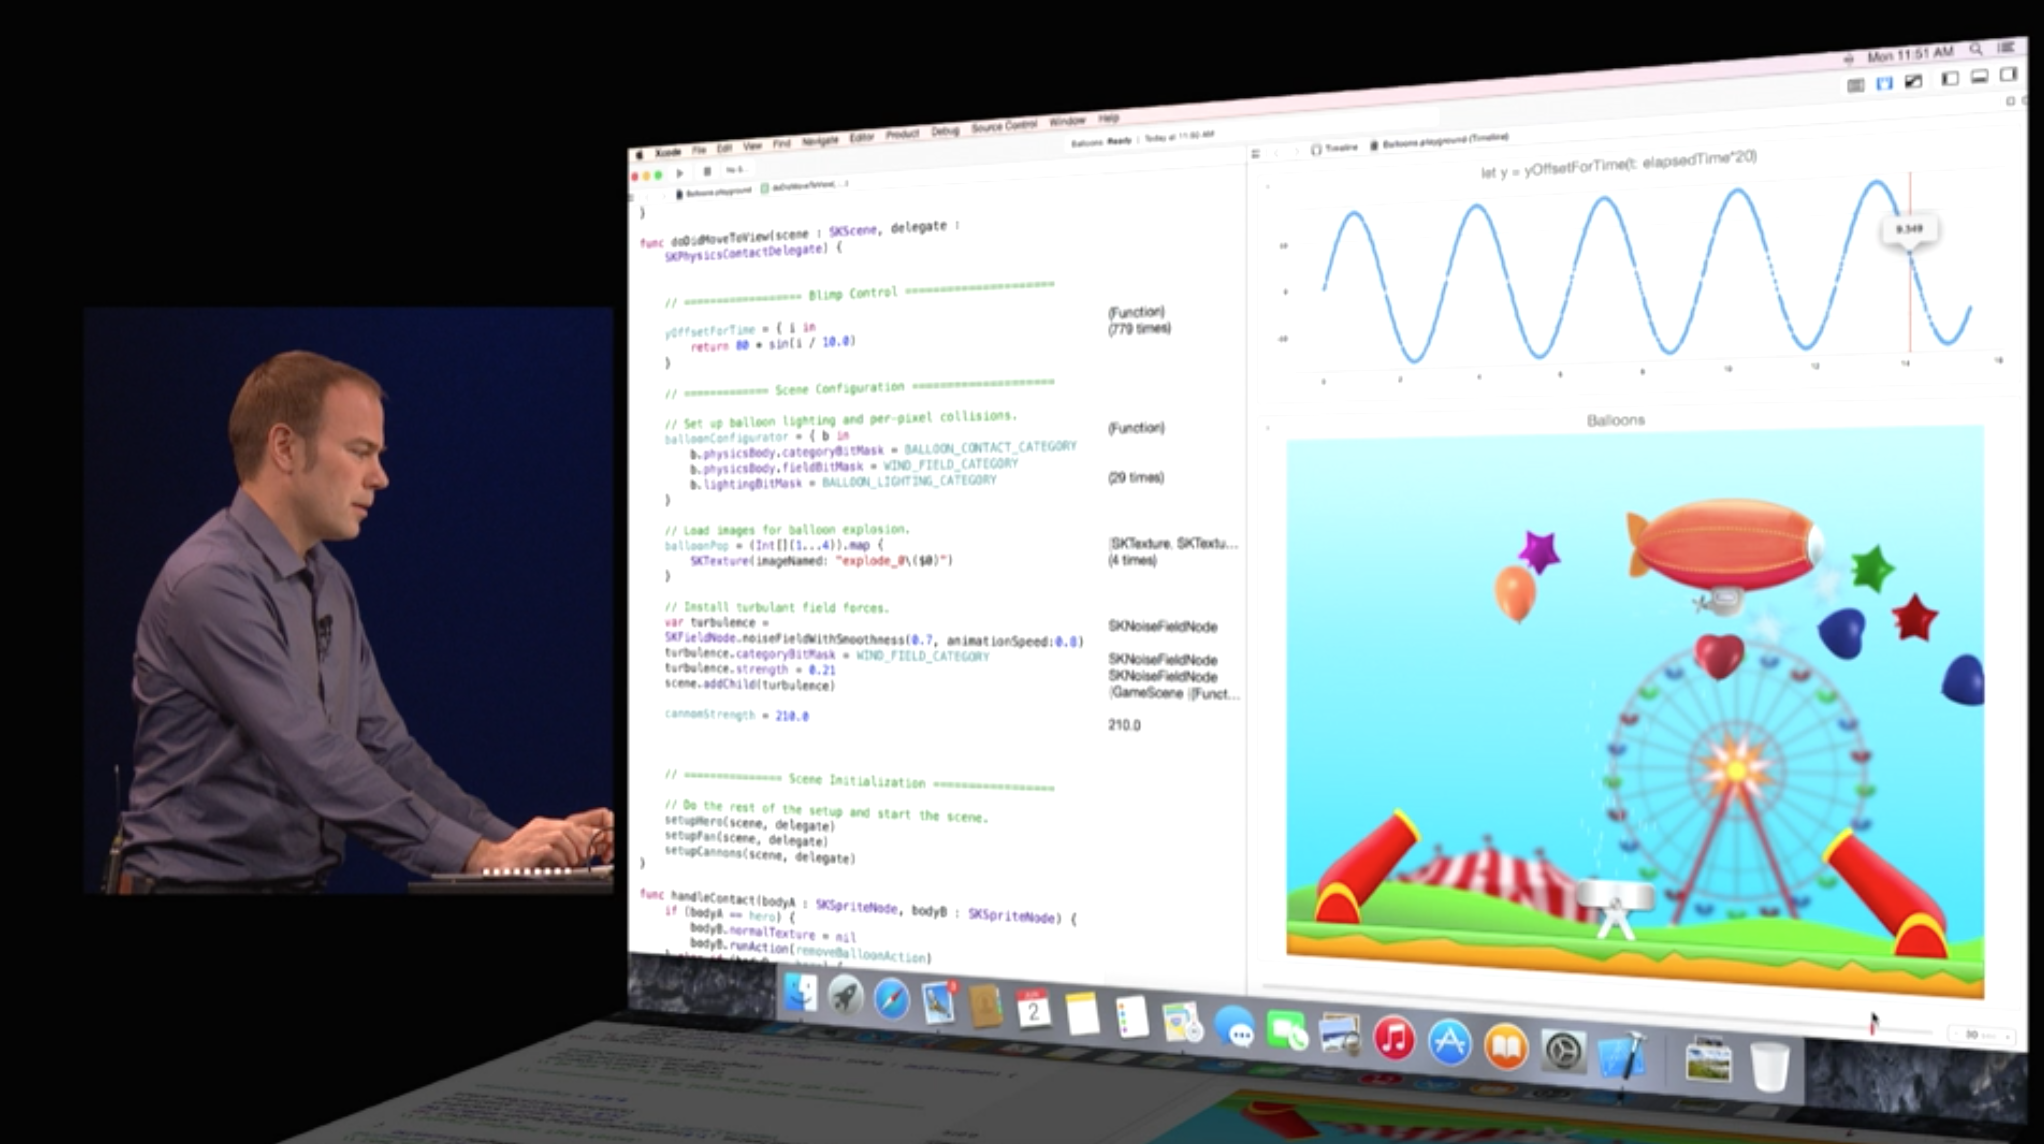 Chris Lattner, pioneer of Swift, demoing at WWDC 2014